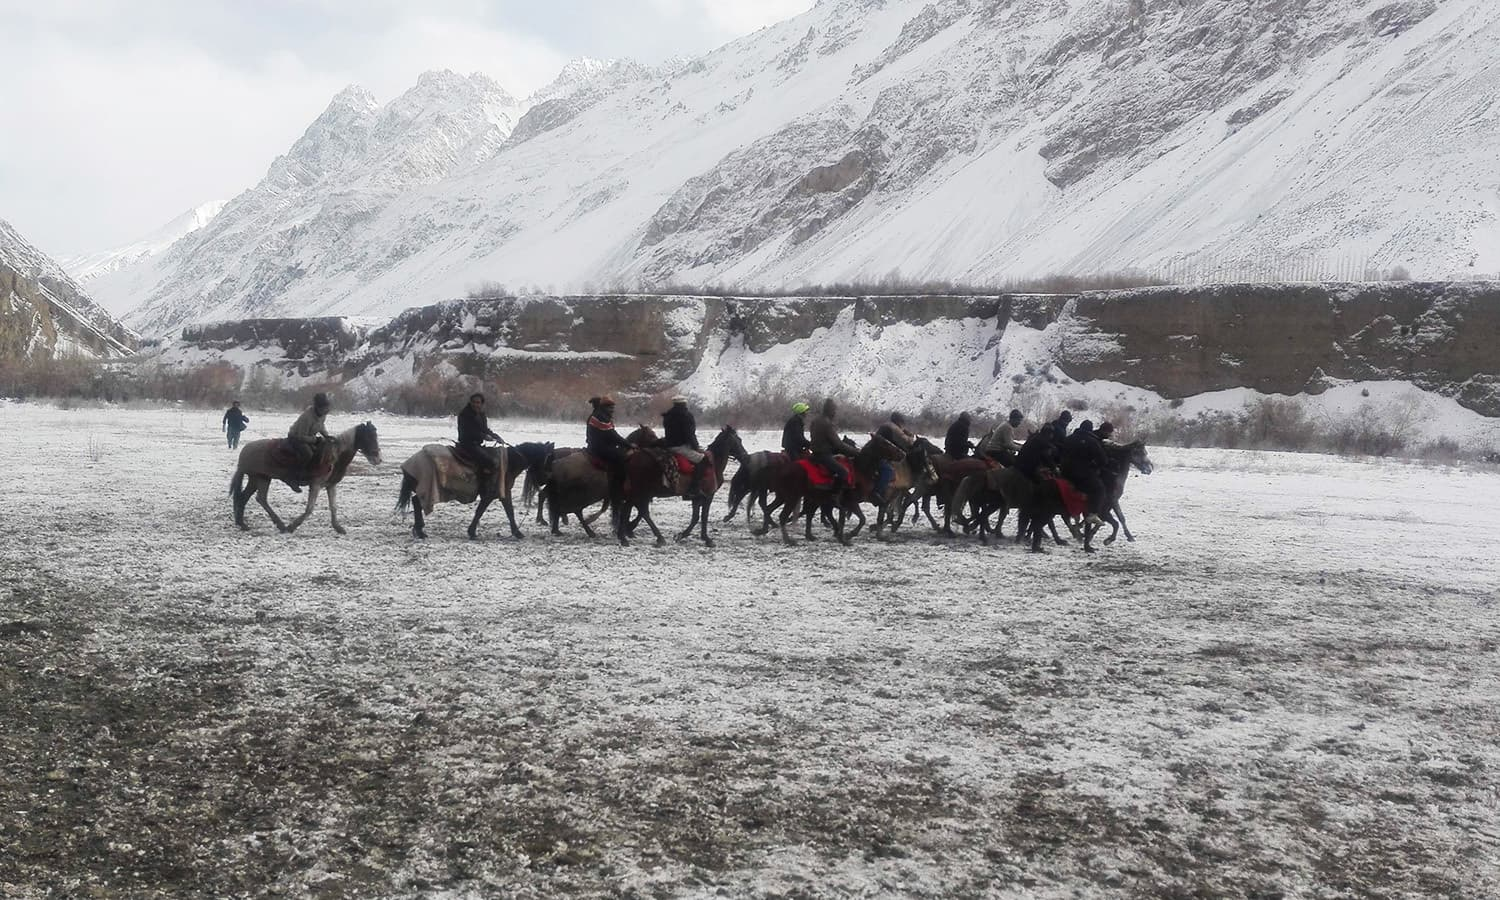 In a remote northern valley surrounded by giant ice-capped peaks, villagers gather to watch a game of Buzkashi.─AFP